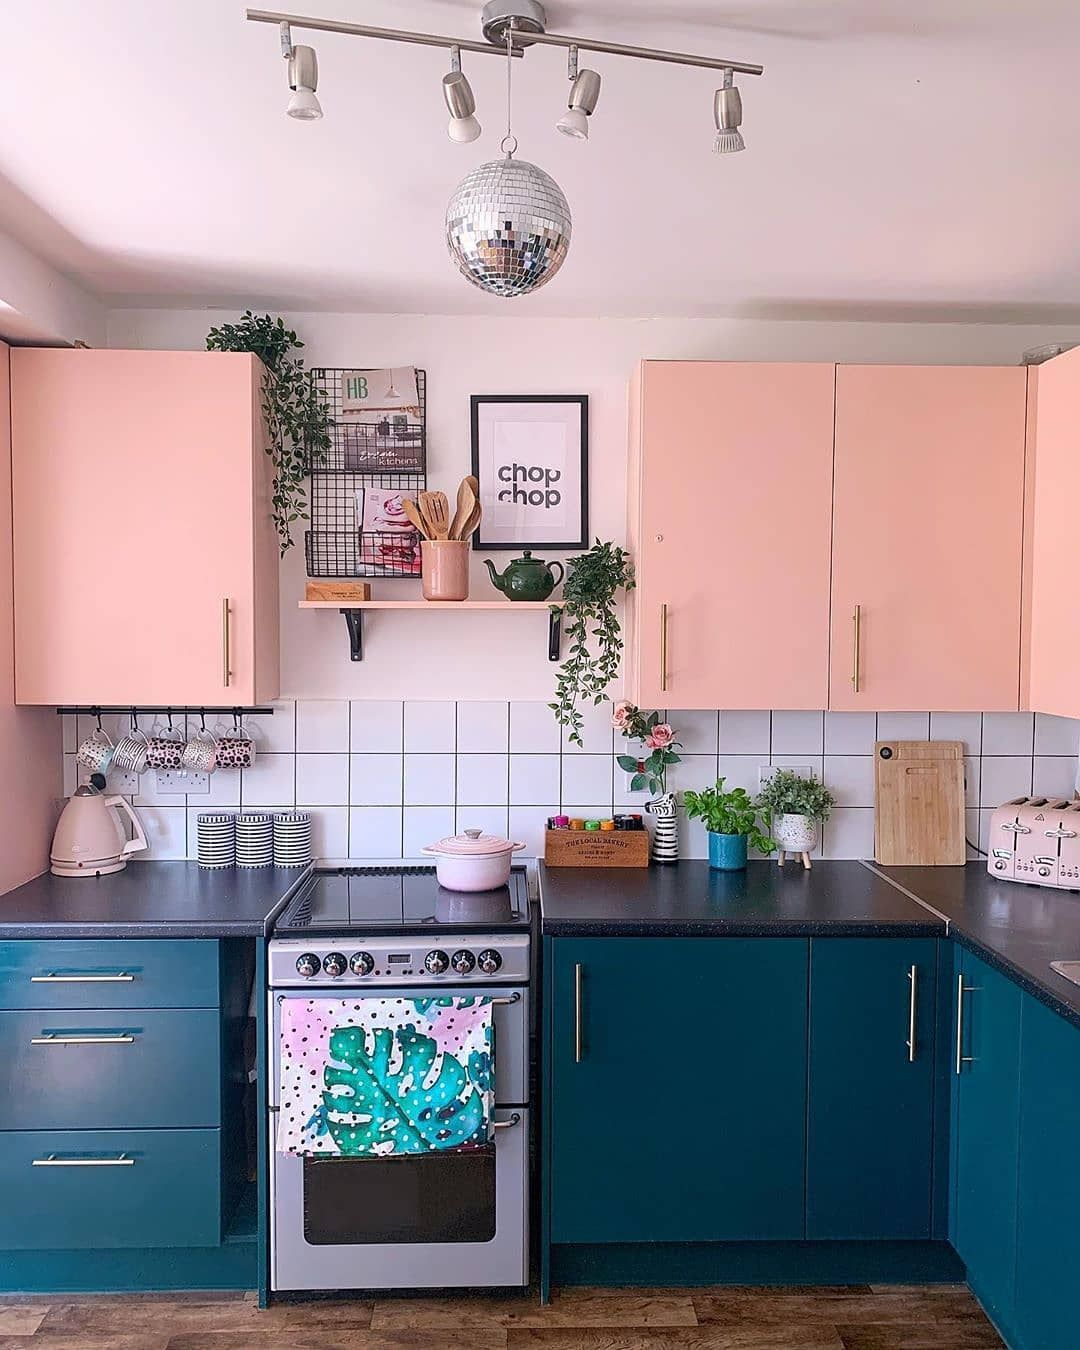 Get High Style In Home Decor On A Low Budget Budget Home Decorating Modern Kitchen Design Home Kitchens Retro kitchen ideas on a budget